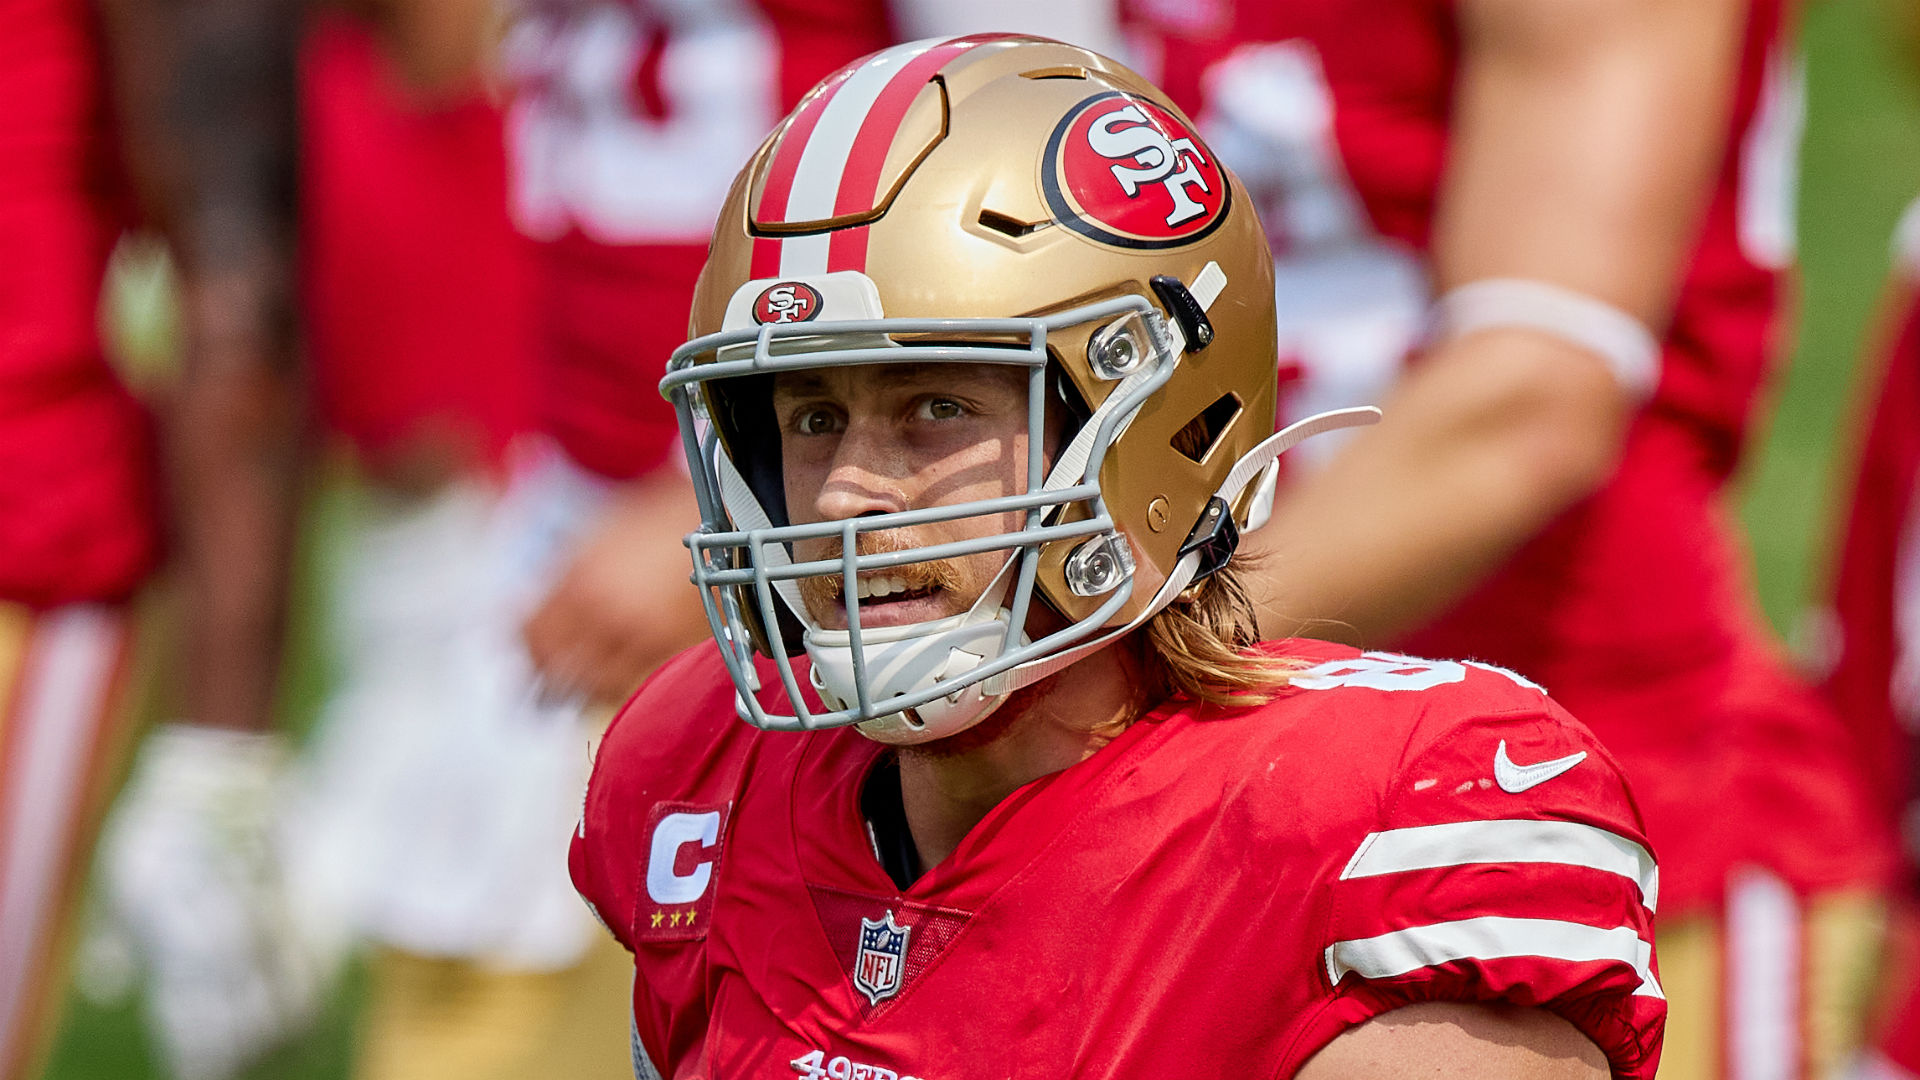 George Kittle will not feature for the San Francisco 49ers at MetLife Stadium, with Kyle Shanahan erring on the side of caution.